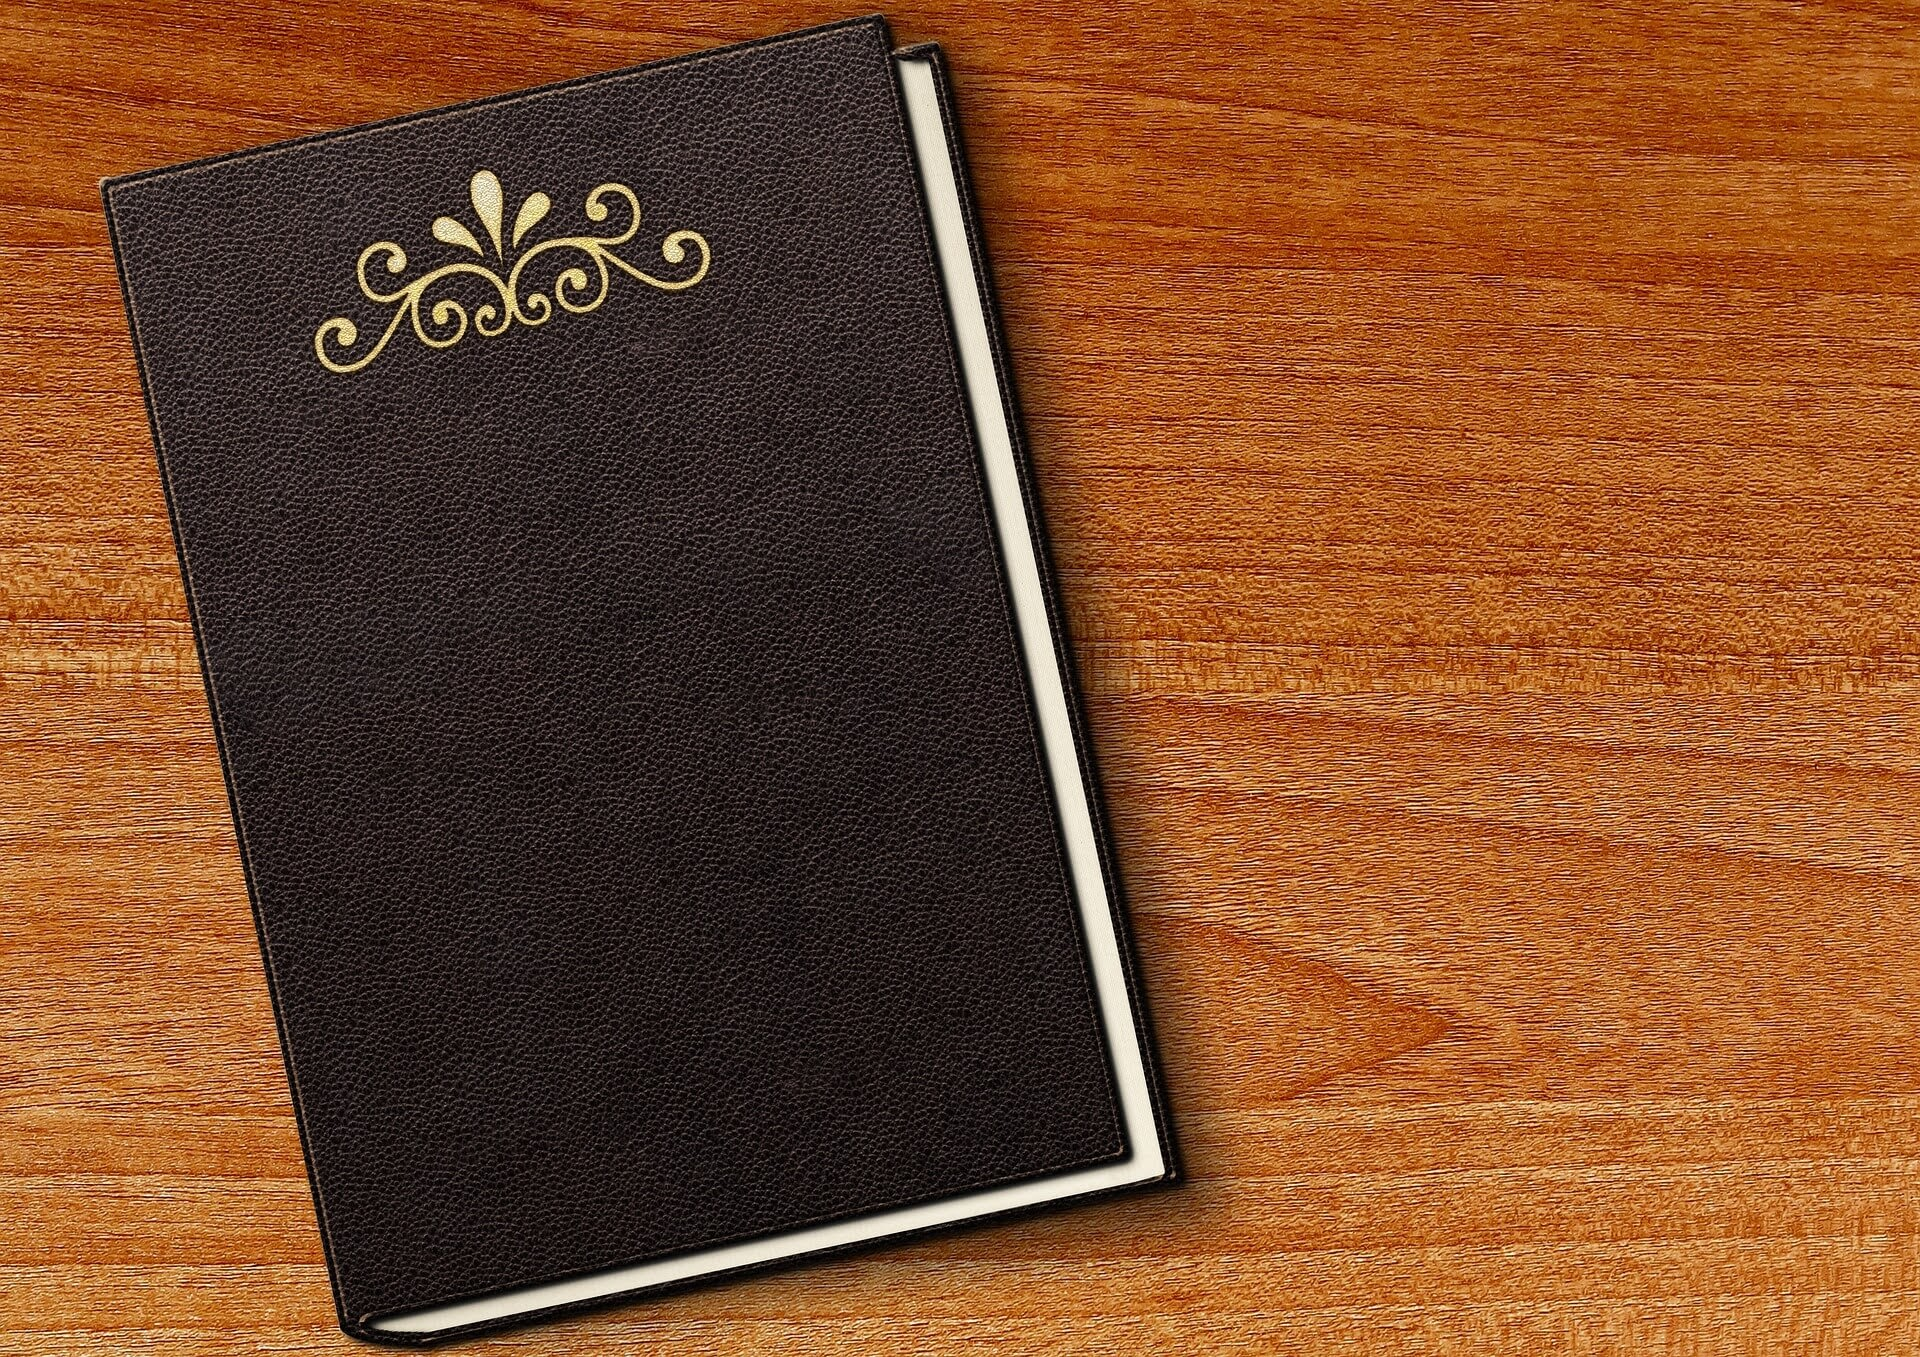 closed black book with embossed cover on a table